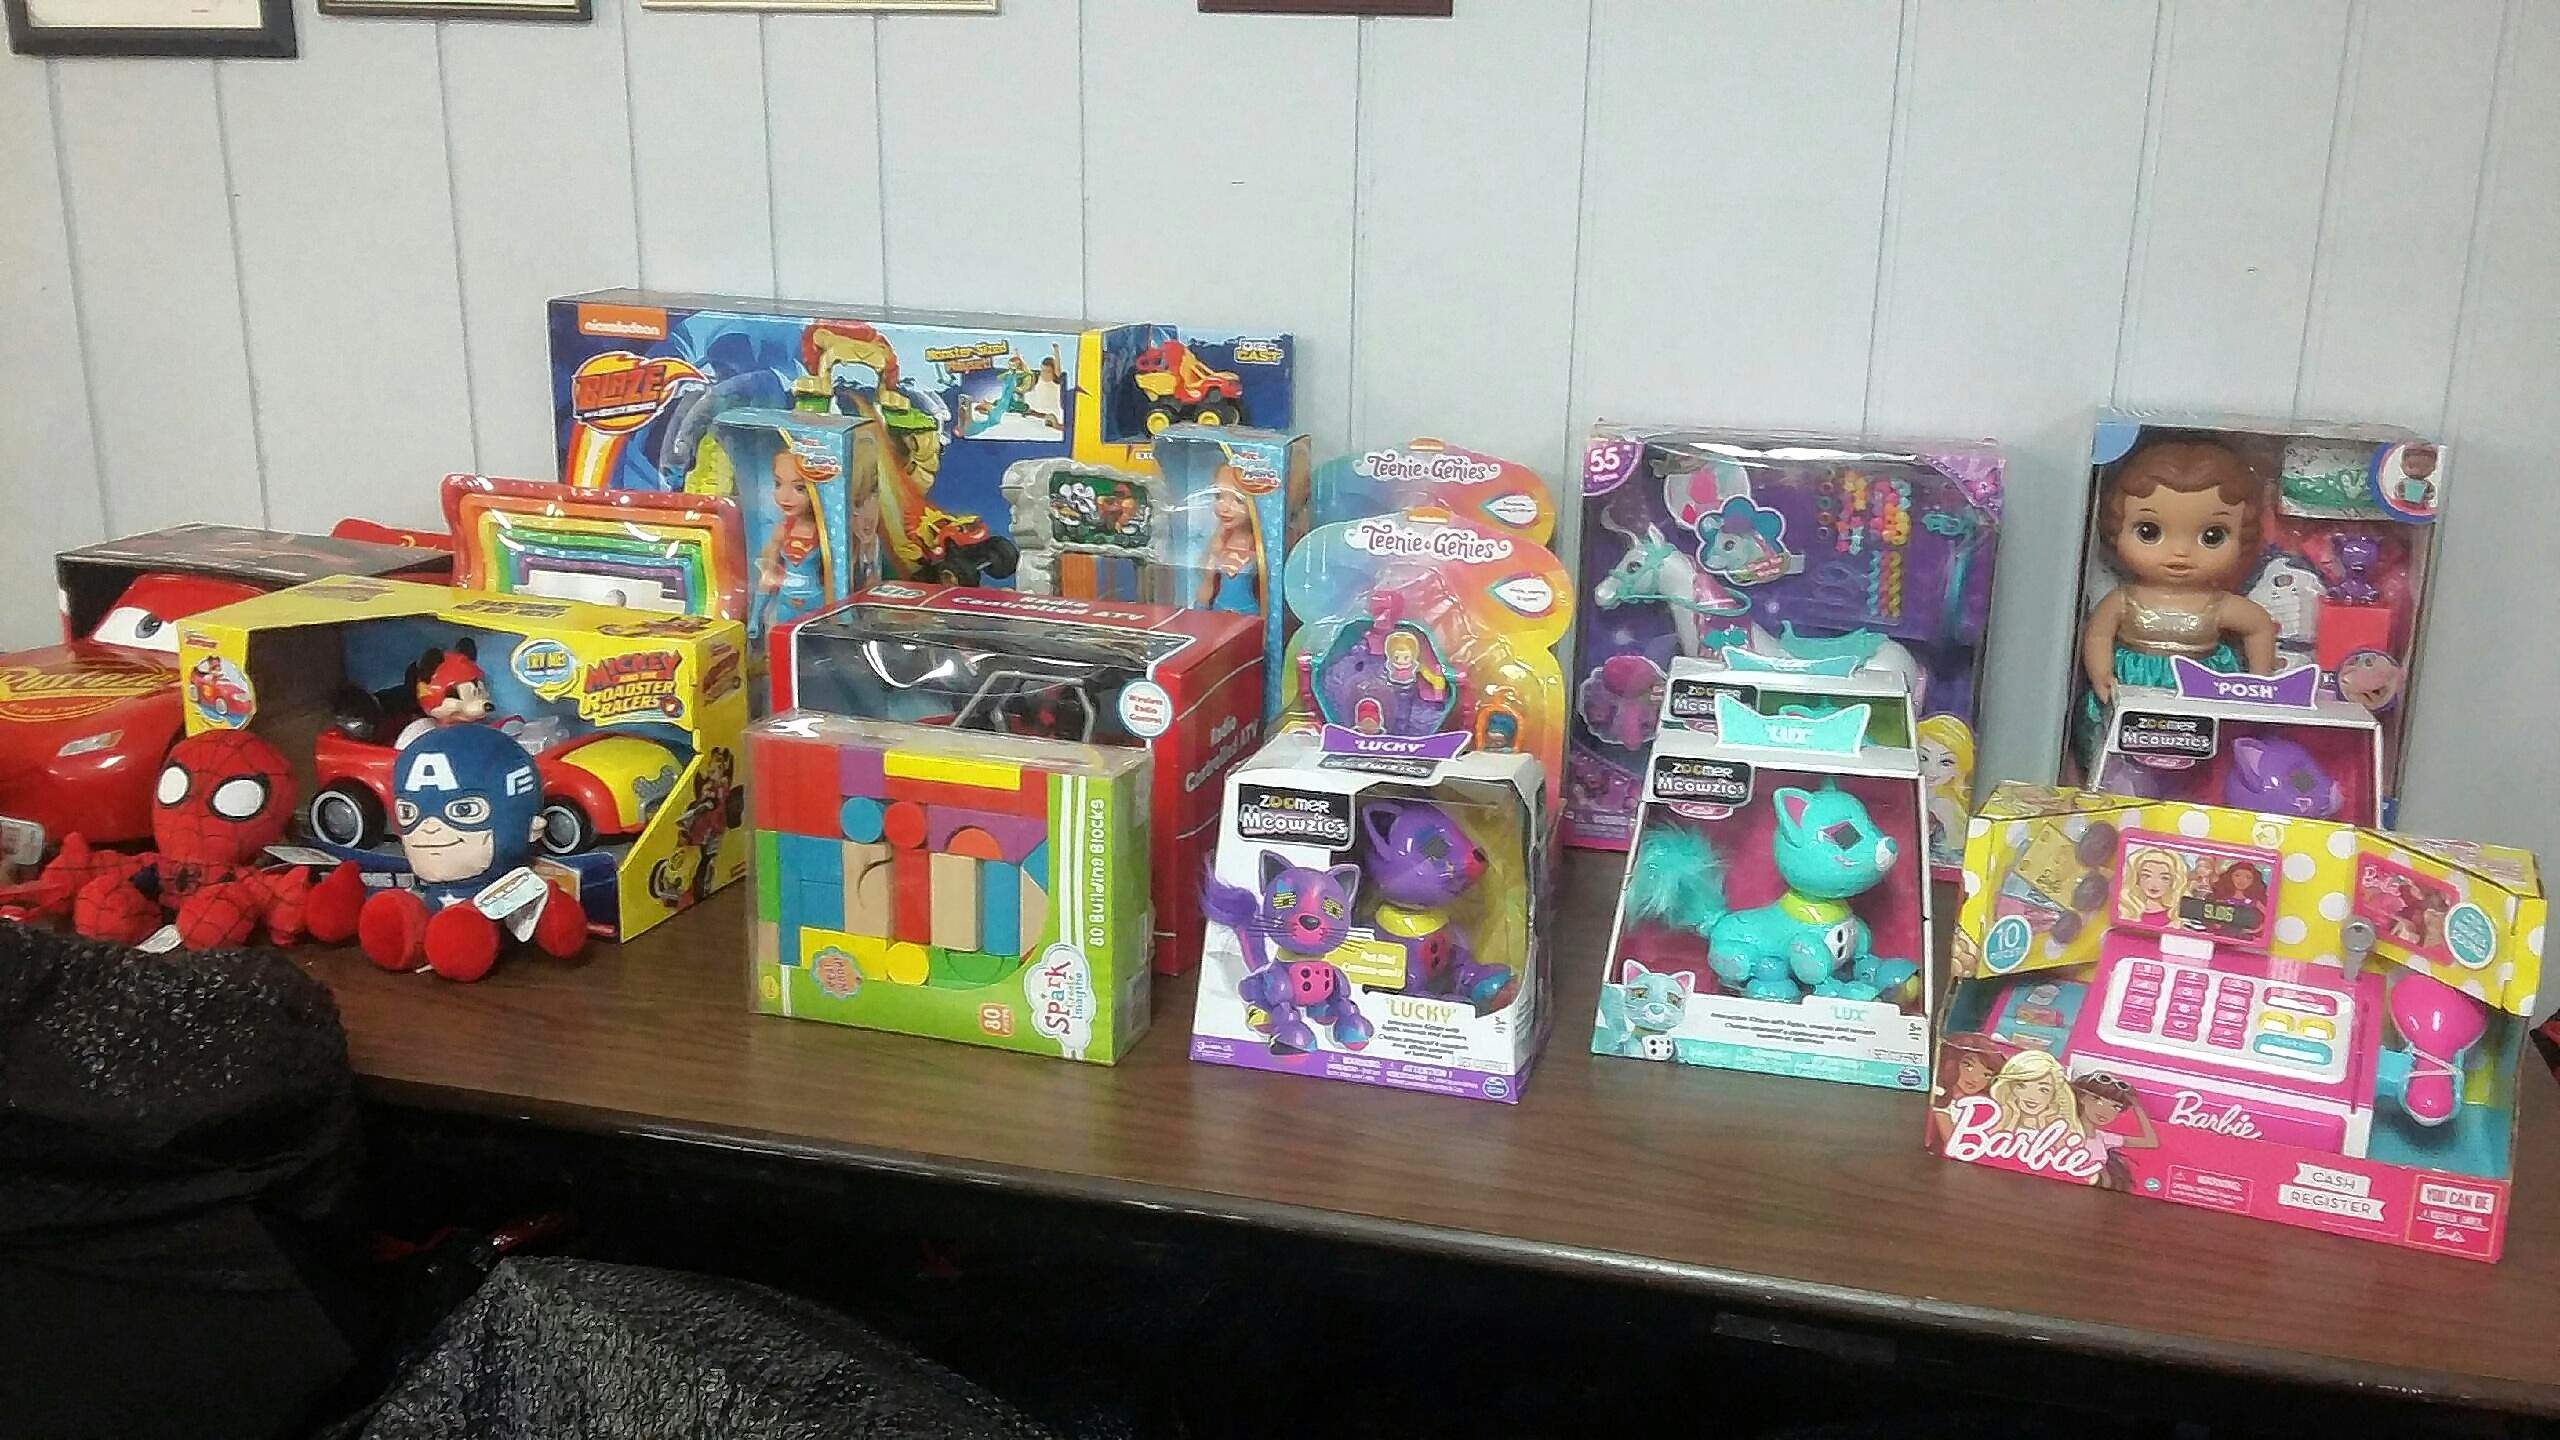 Pictured are some of the toys purchased as gifts for pediatric patients at Shriners Hospital in St. Louis. The gifts were made possible through a lemonade stand fundraiser.